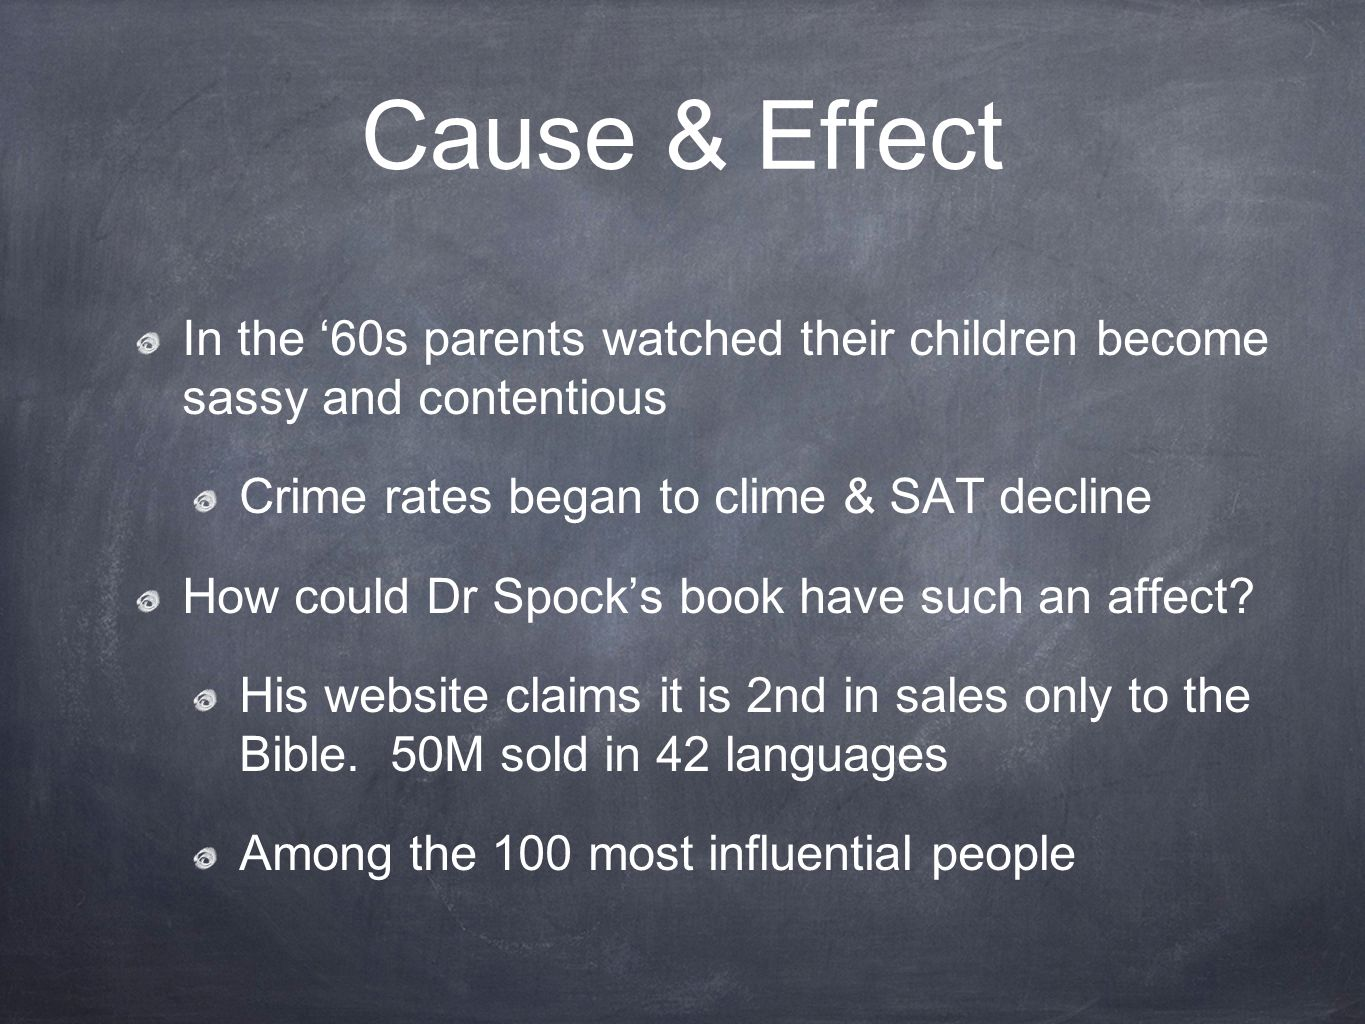 Cause & Effect Dr Spock was aware of his negative influence upon parenting In 1968 he told NY Times his 1st edition contributed to permissive parenting He said Parents began to be afraid to impose on the child in any way He tried to remedy this by emphasizing the need for setting standards and asking for respect in his 2nd edition